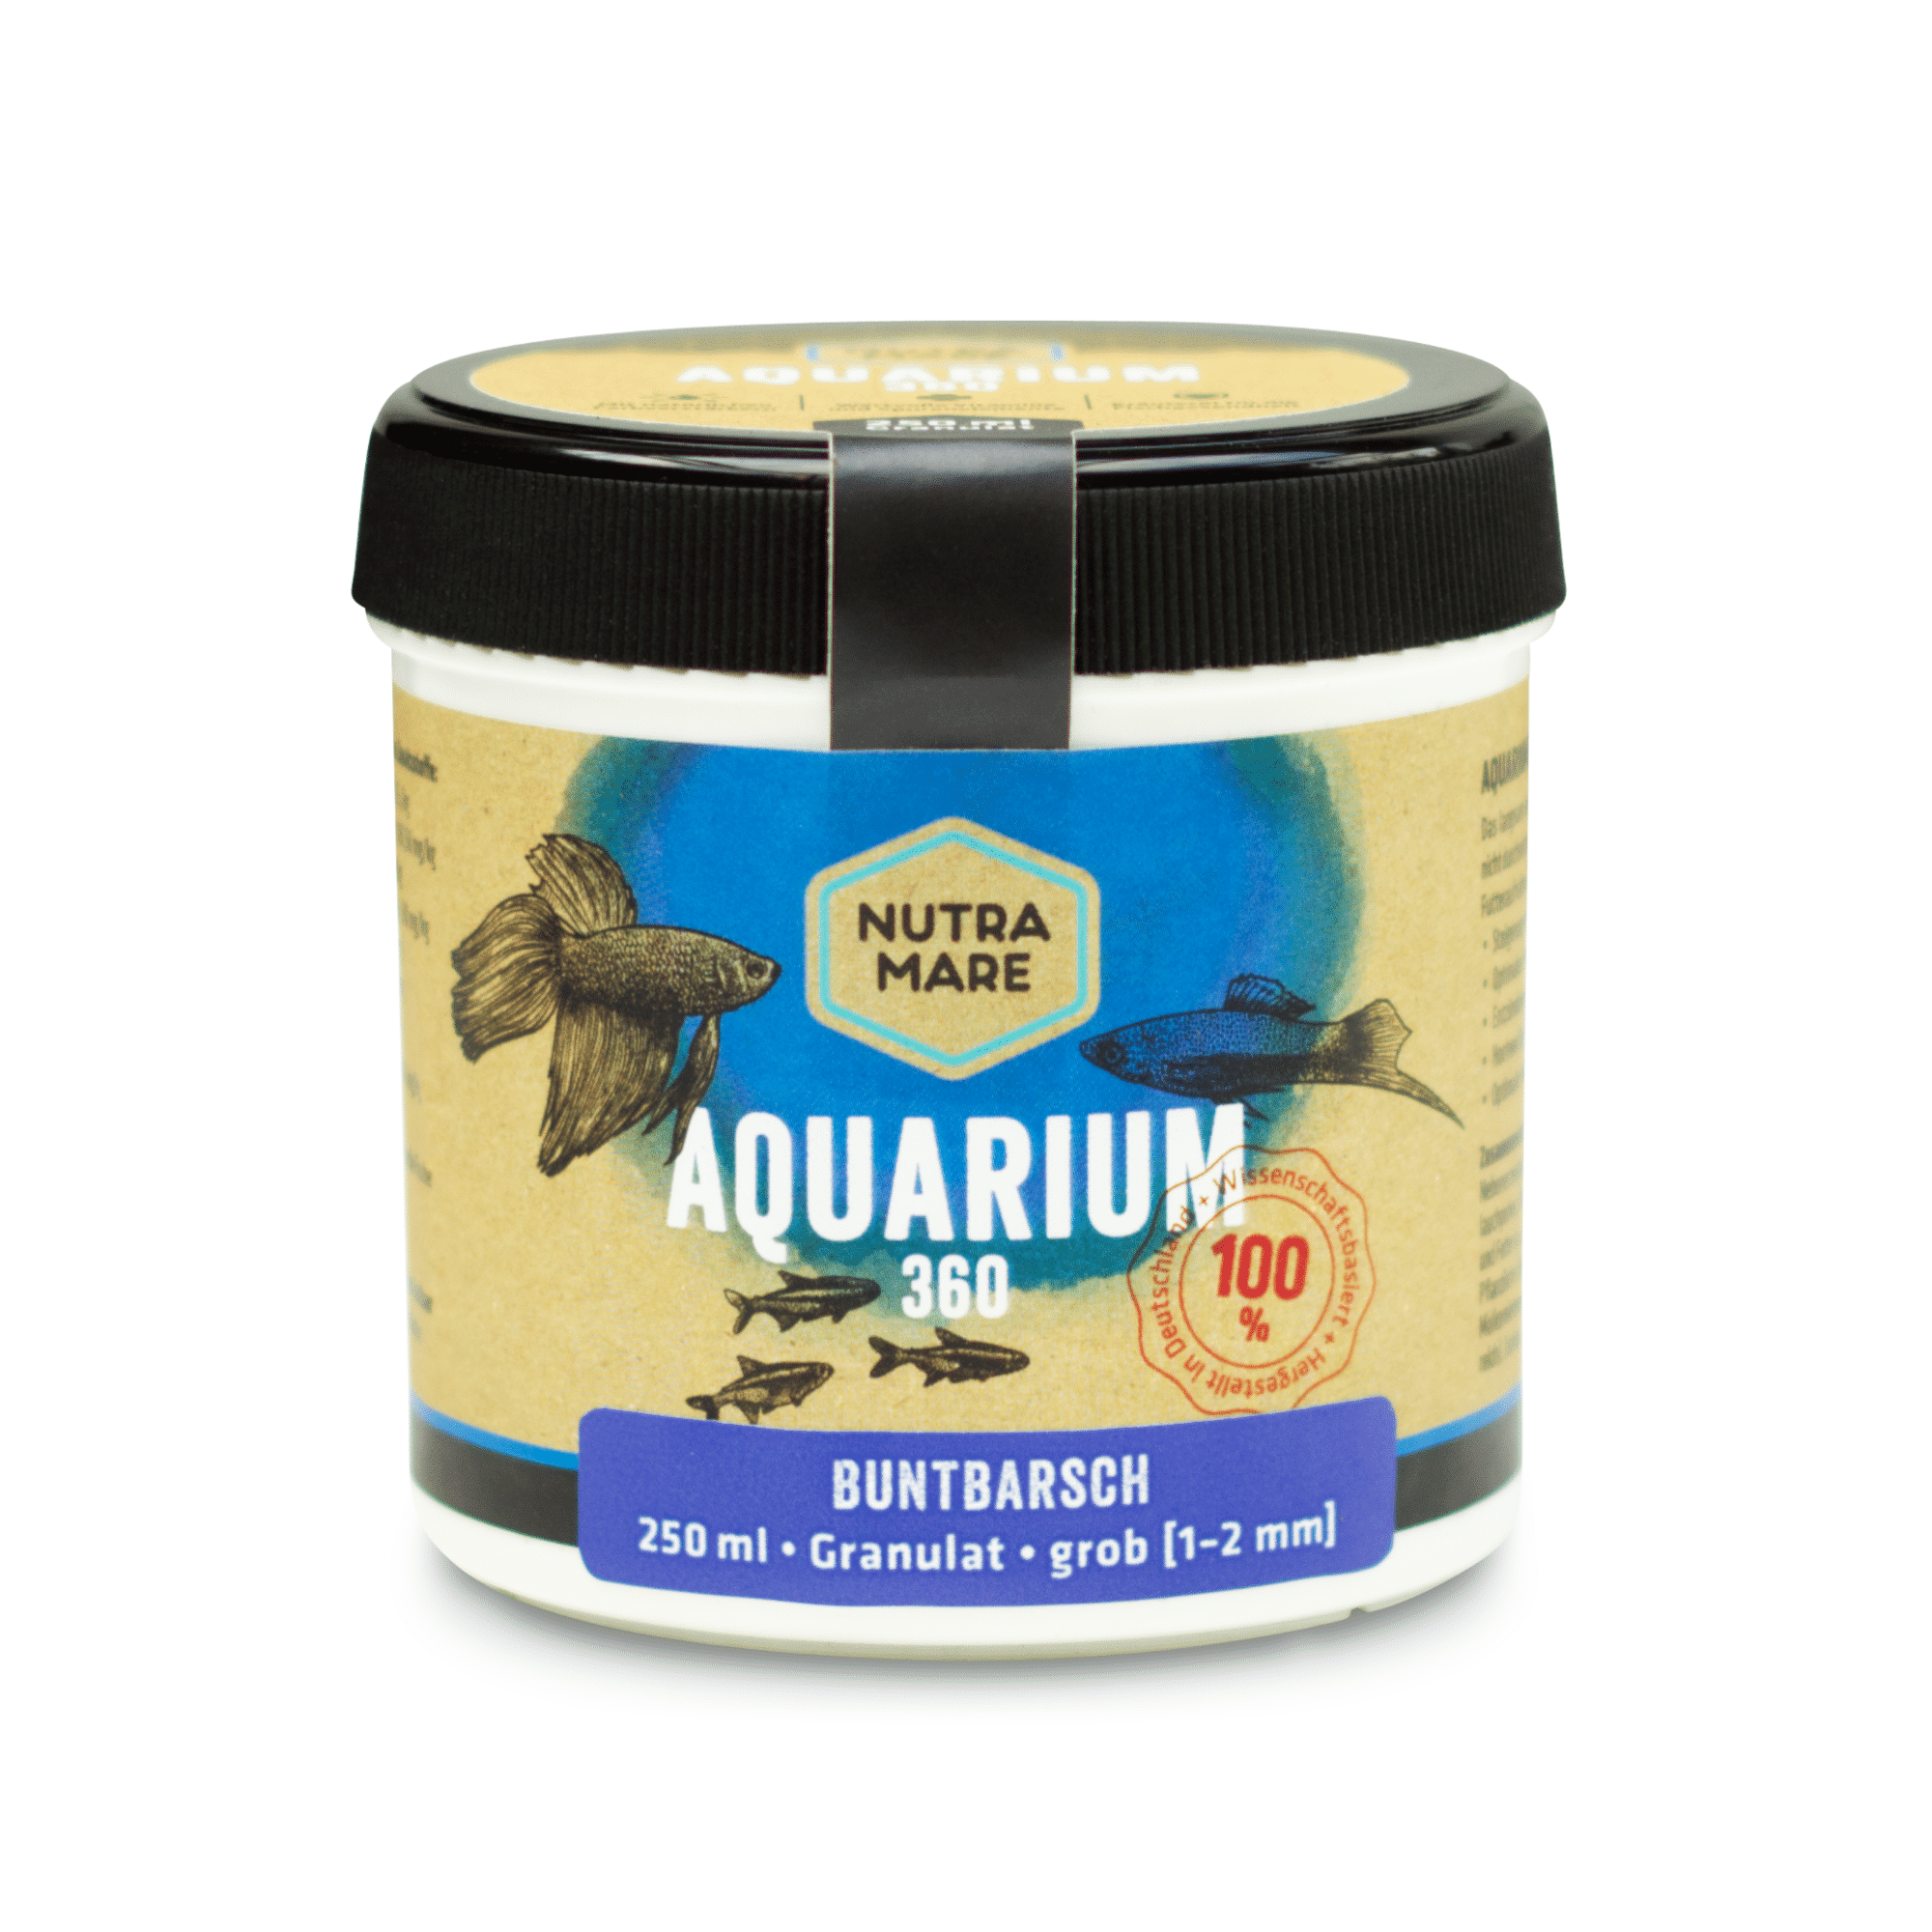 Aquariumfutter Nutramare Aquarium360 Buntbarsch 250ml